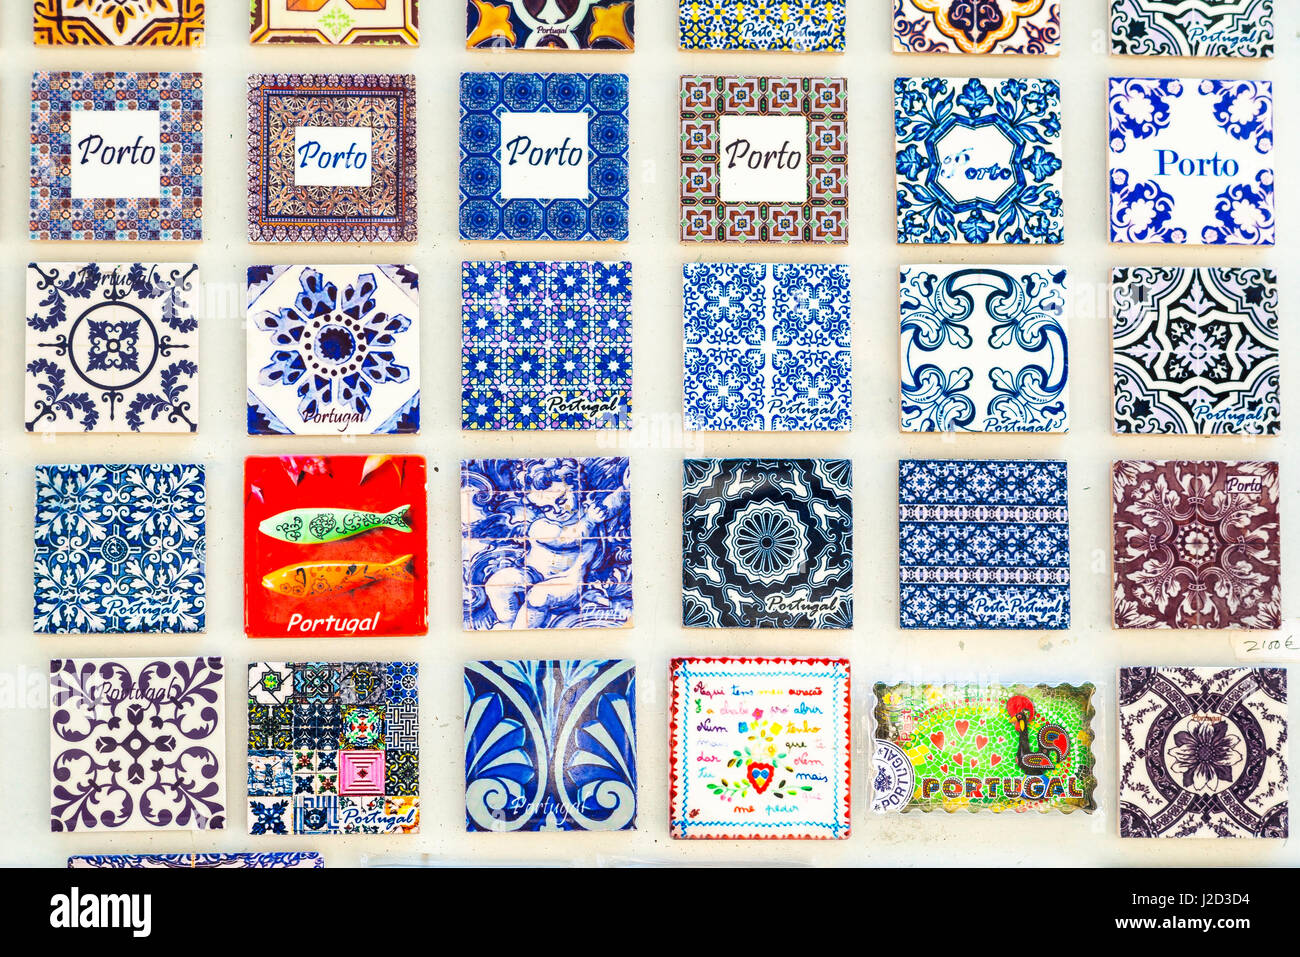 Tiles Porto Portugal, a display of colourful ceramic tiles sold as ...